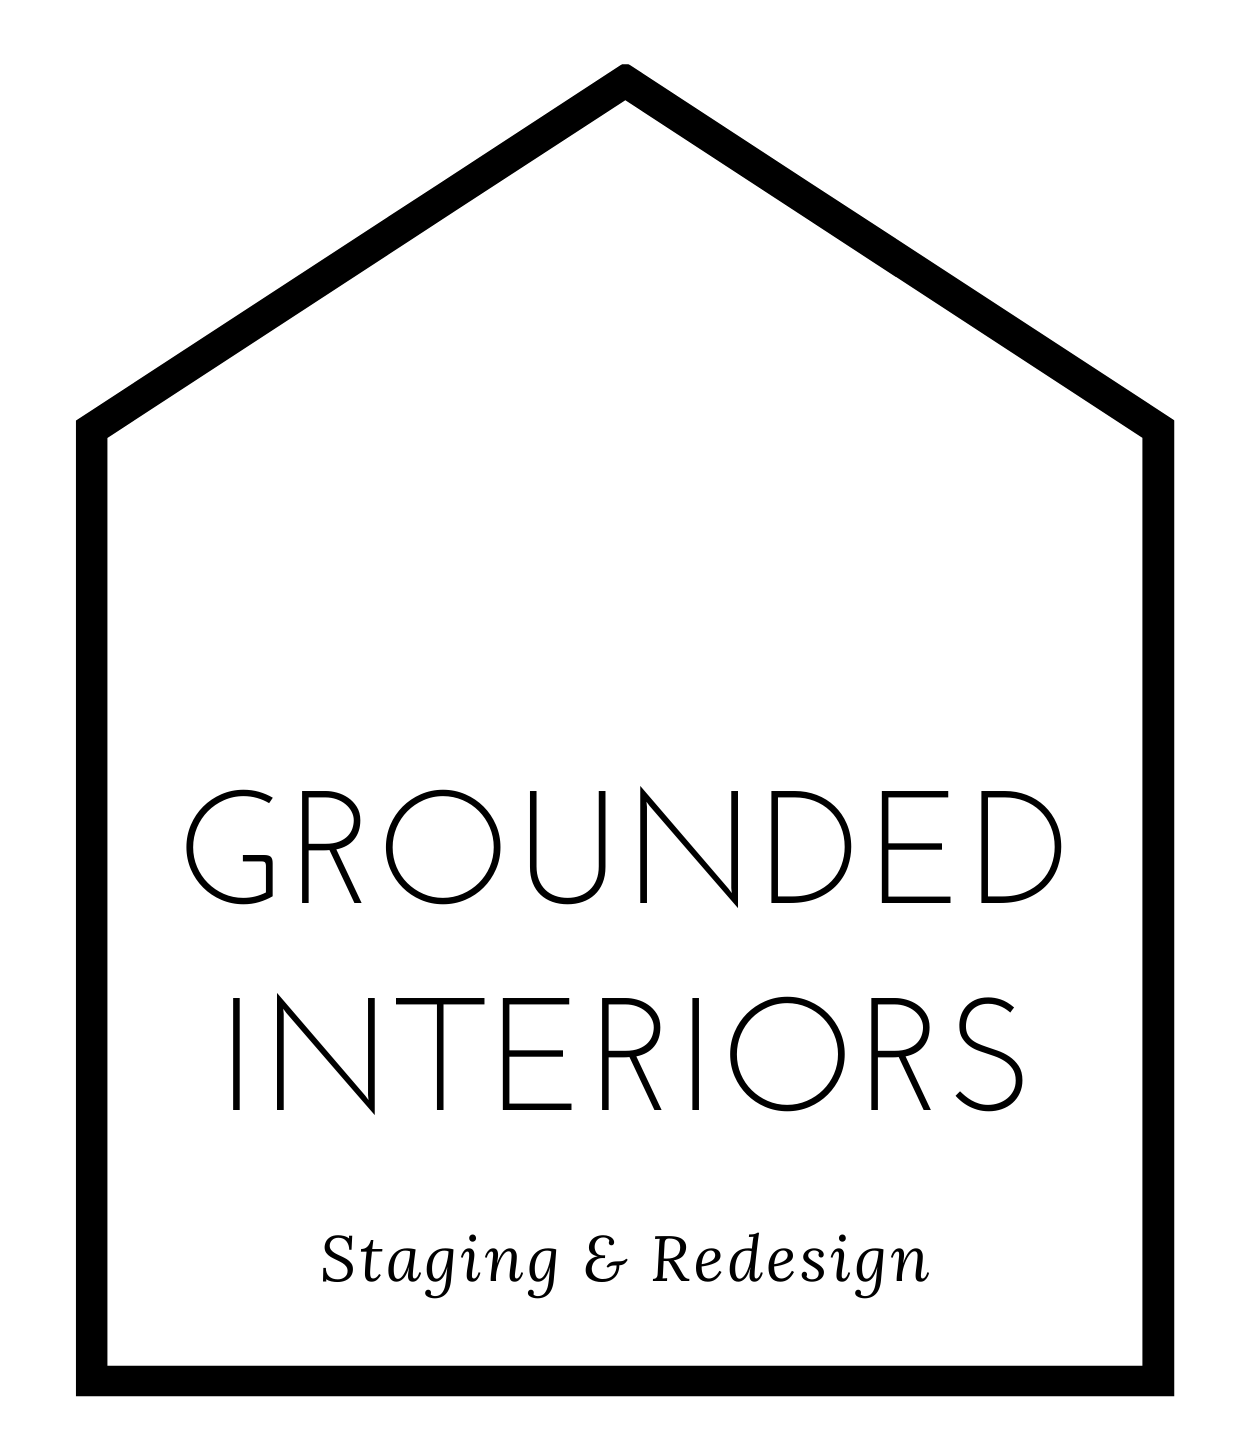 Grounded Interiors